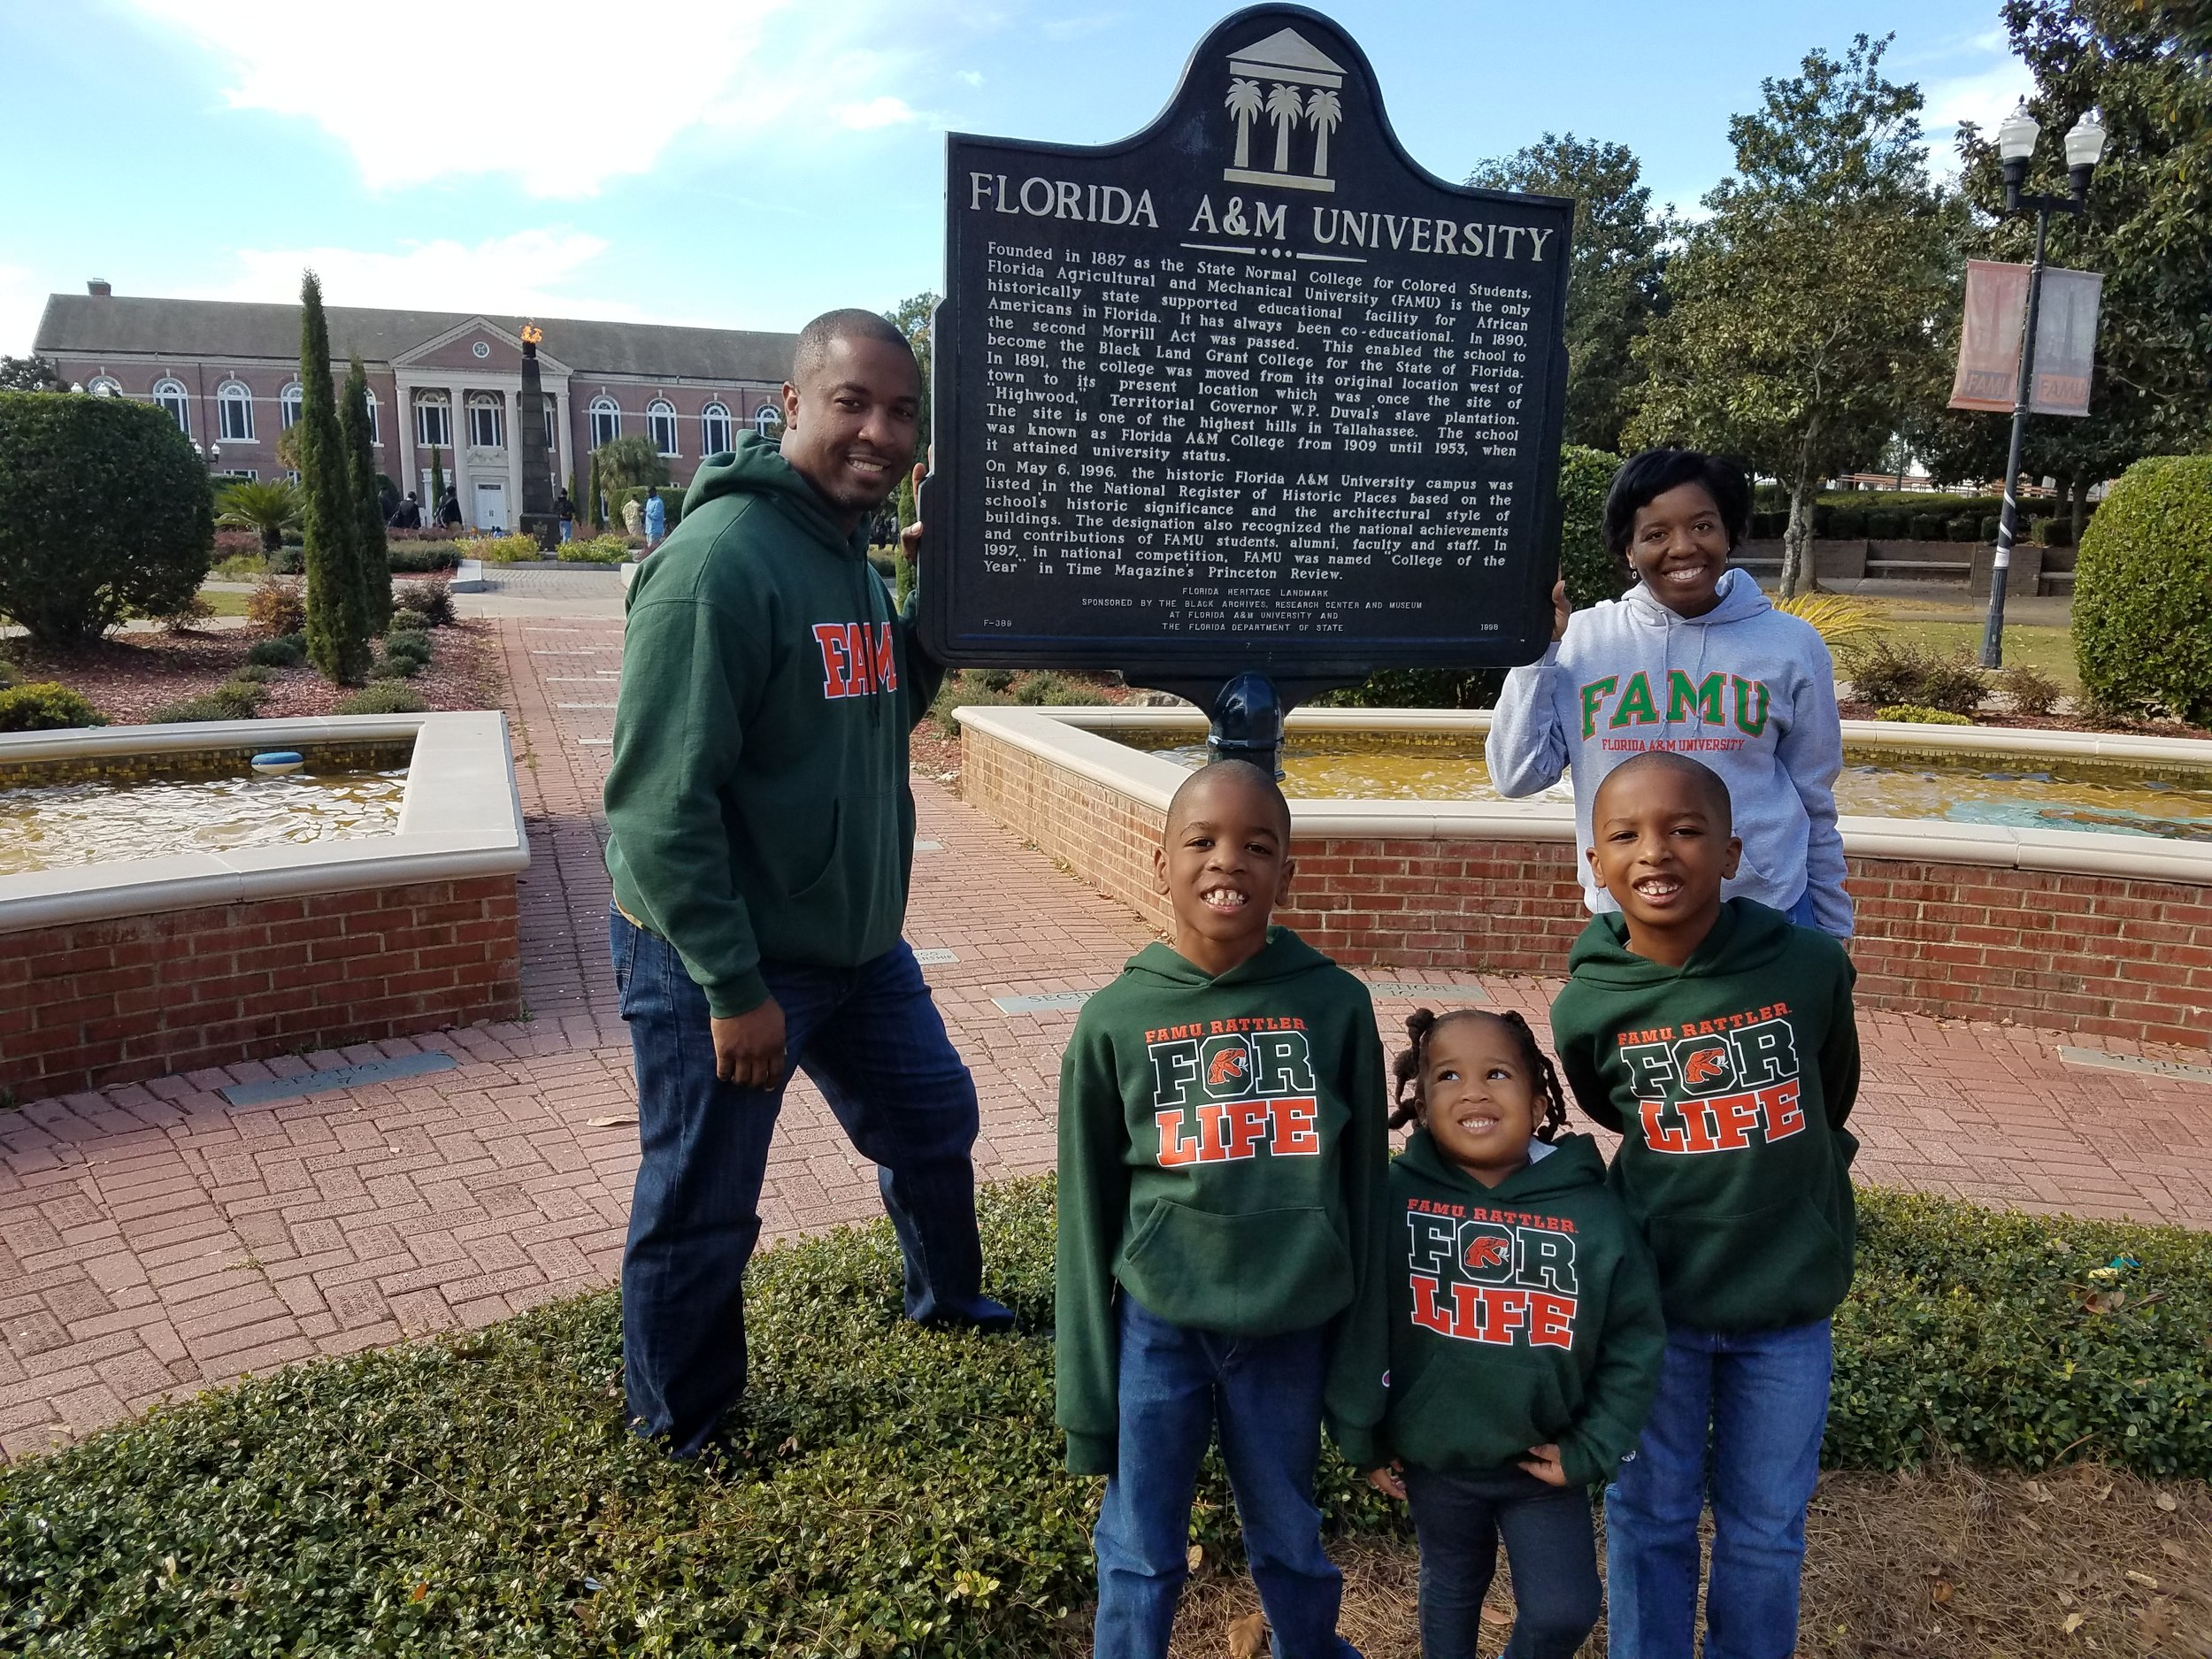 Houstons on the campus of Florida A&M University